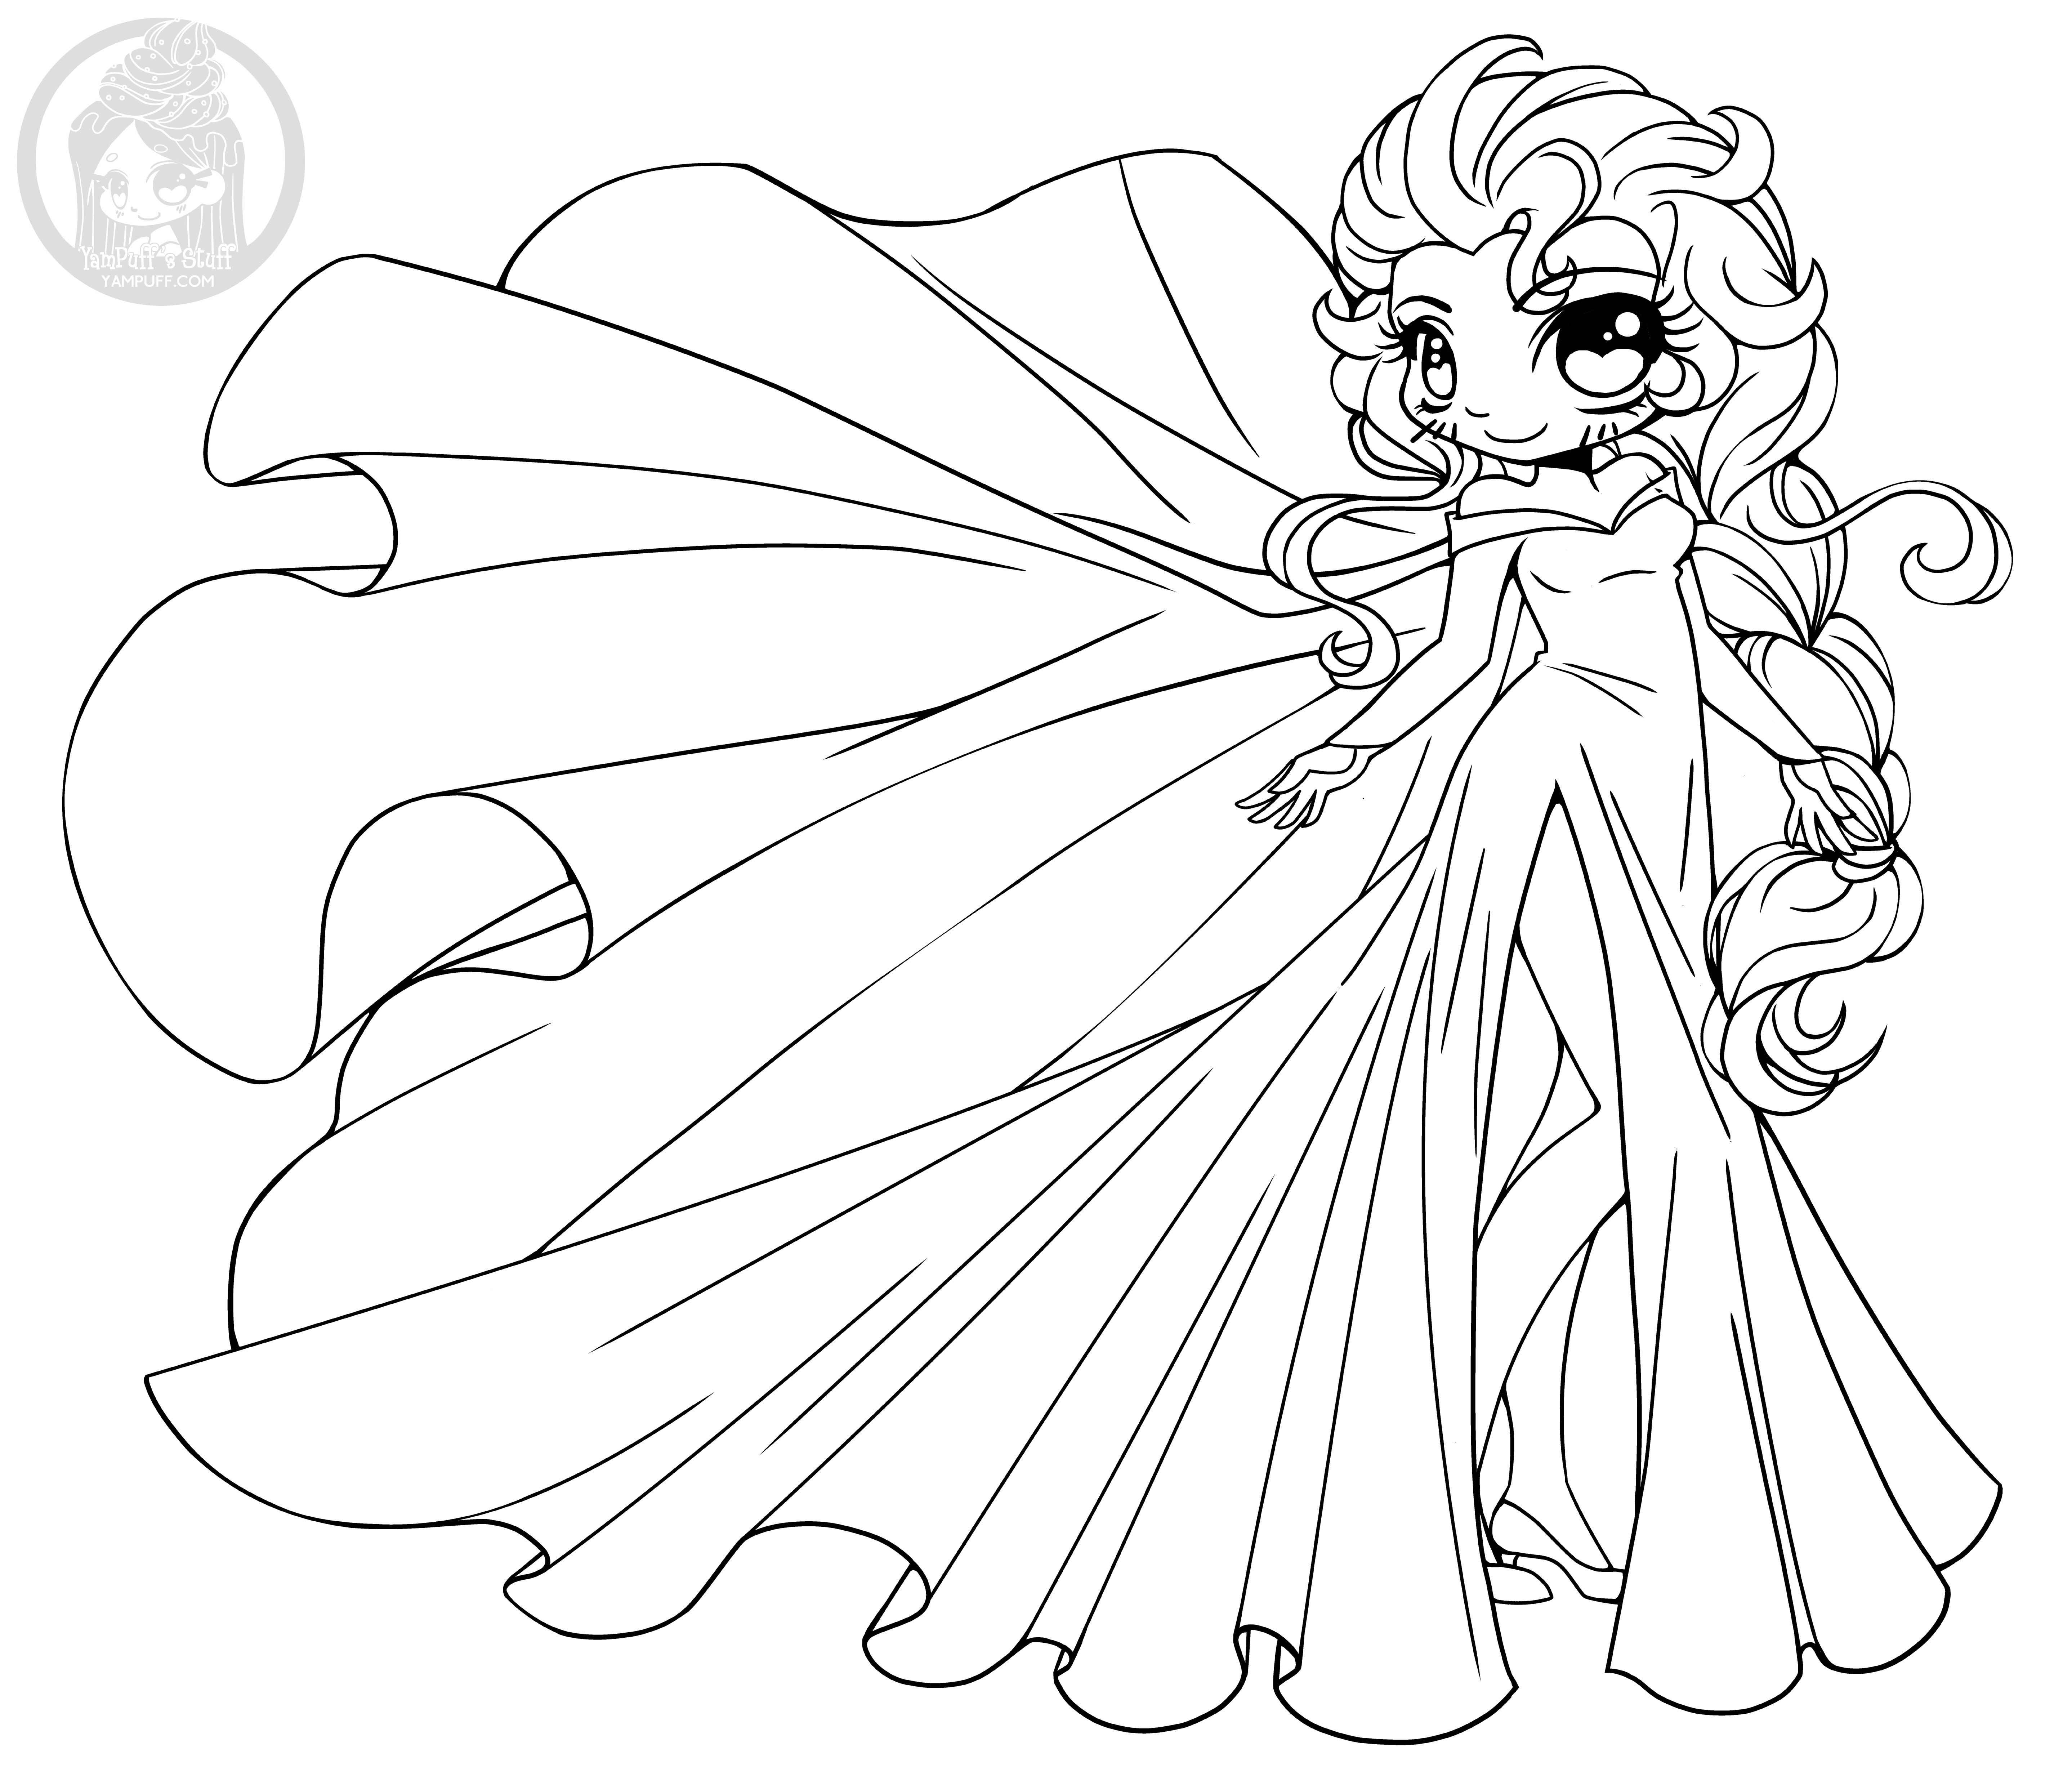 22 Great Image Of Chibi Coloring Pages Davemelillo Com Chibi Coloring Pages Princess Coloring Pages Disney Princess Coloring Pages